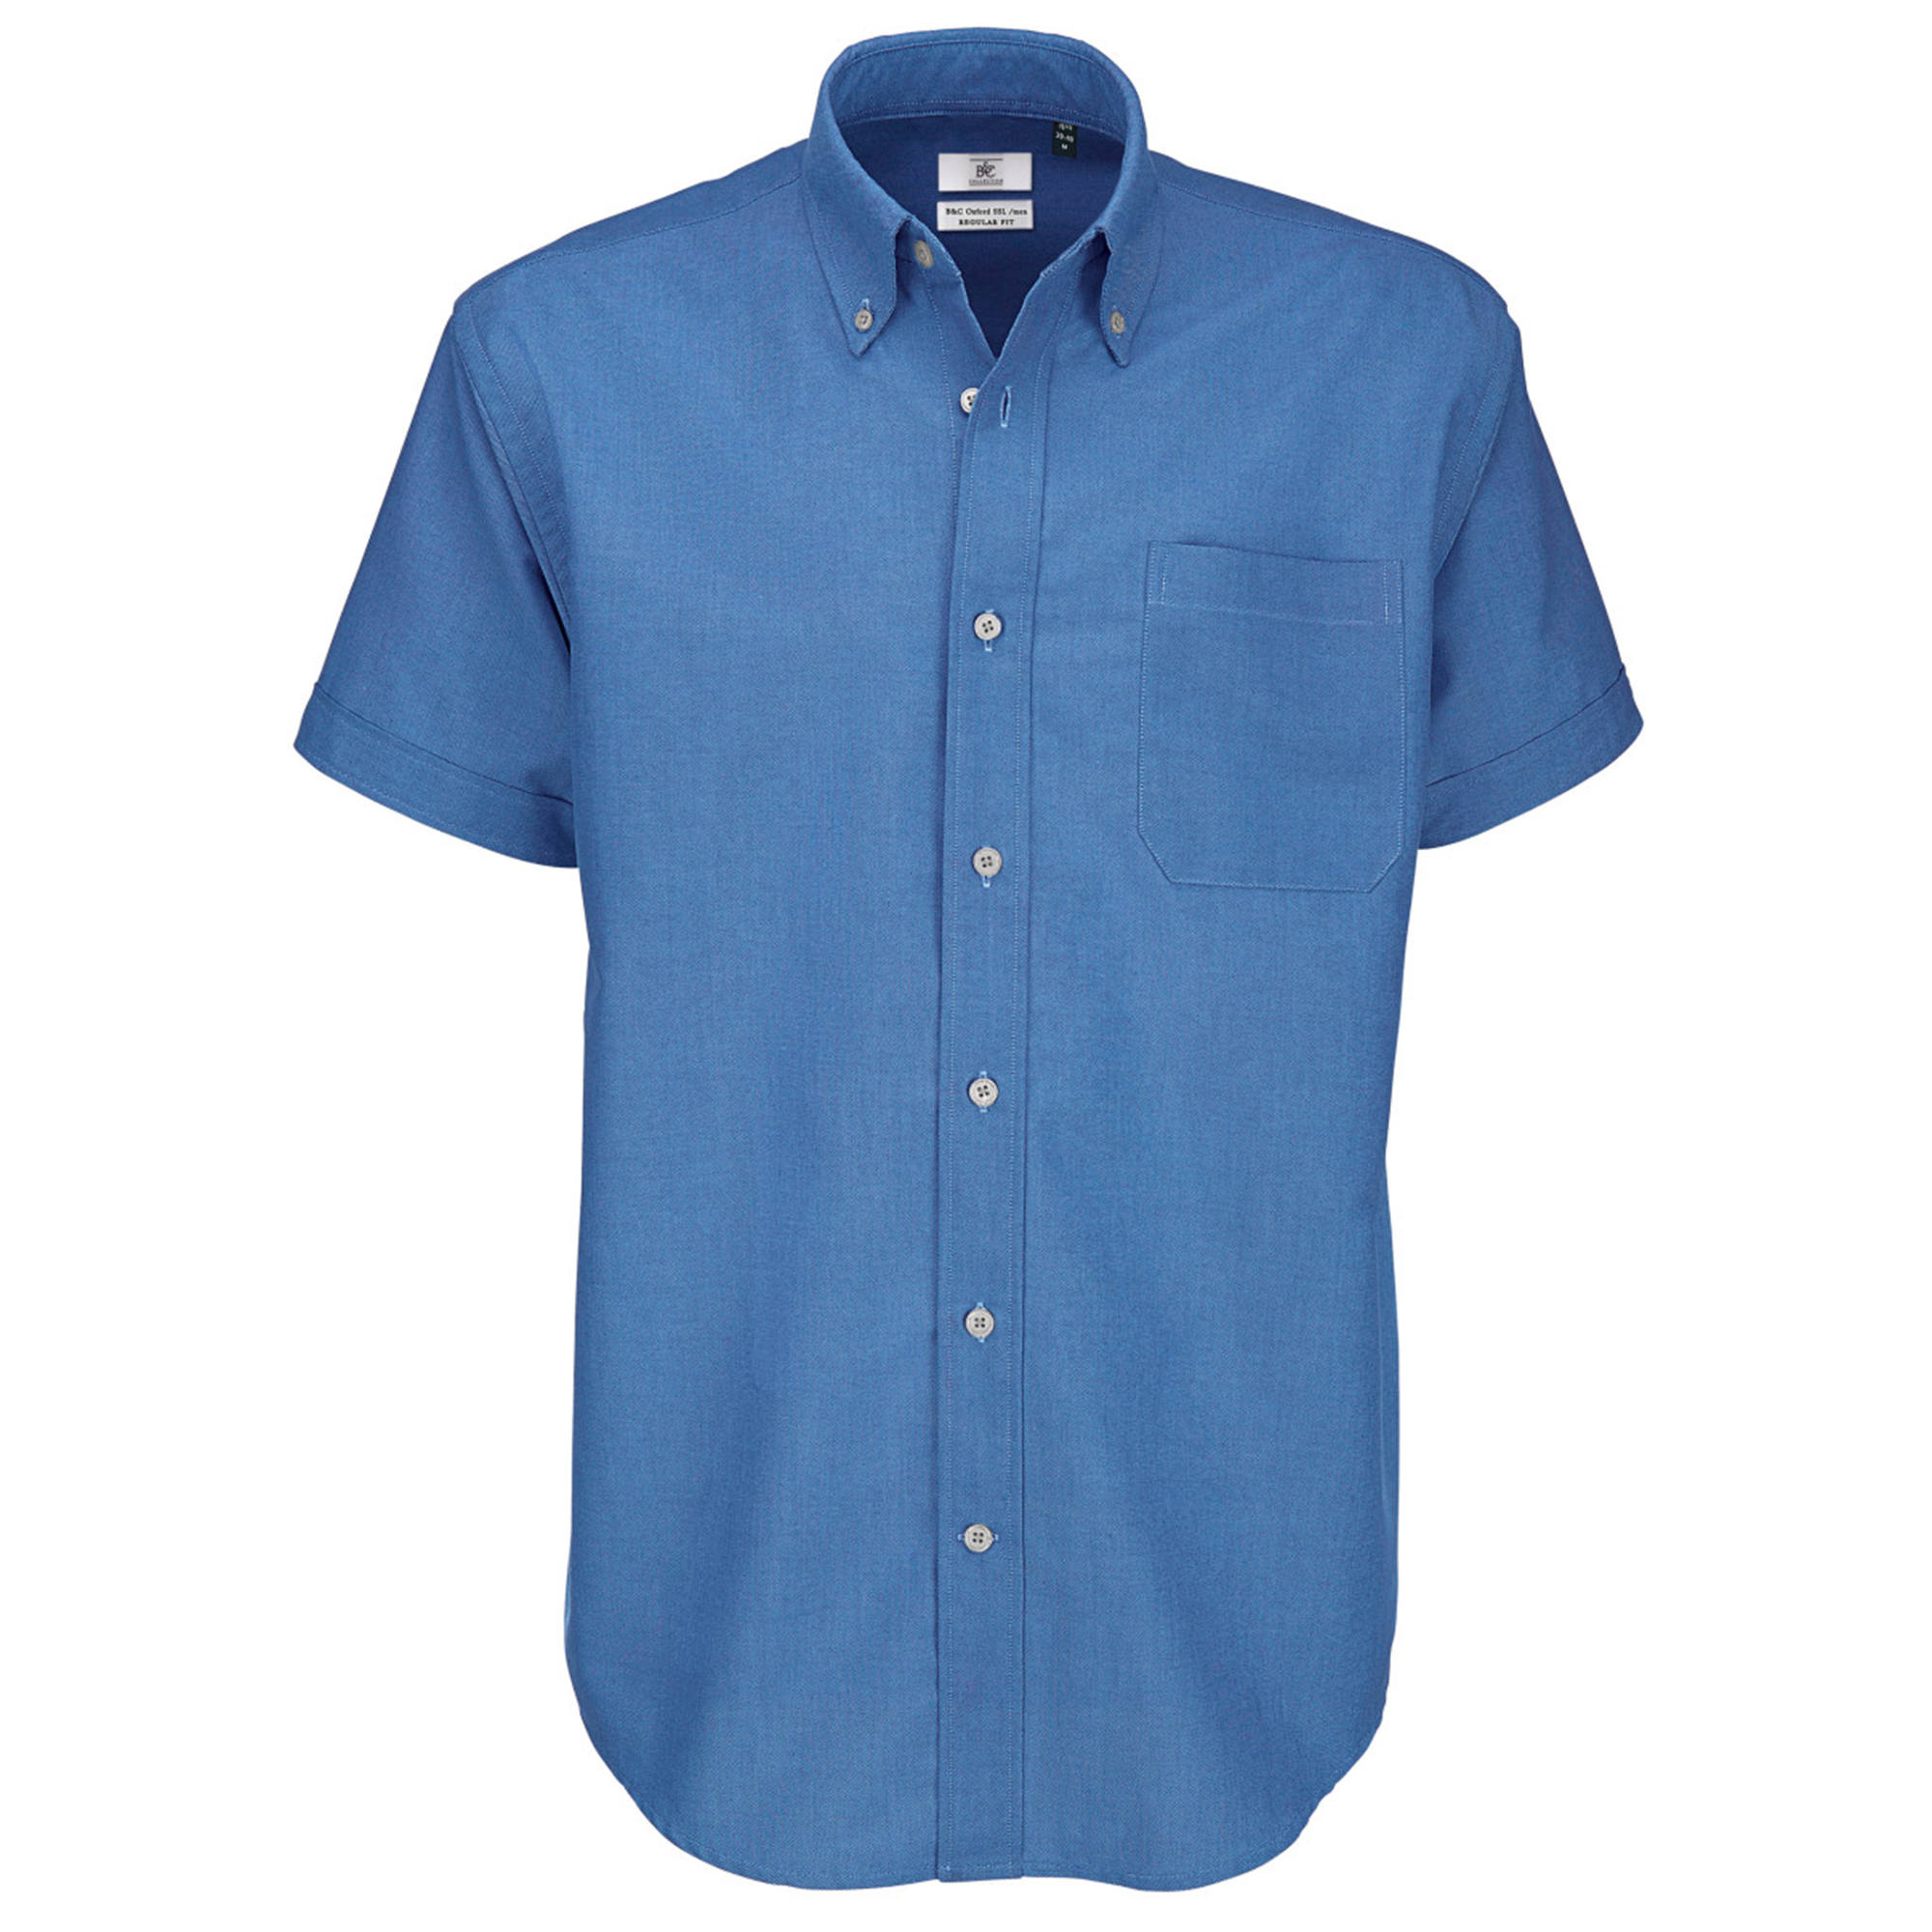 B c mens oxford short sleeve shirt mens shirts ebay for Mens short sleeve oxford shirt